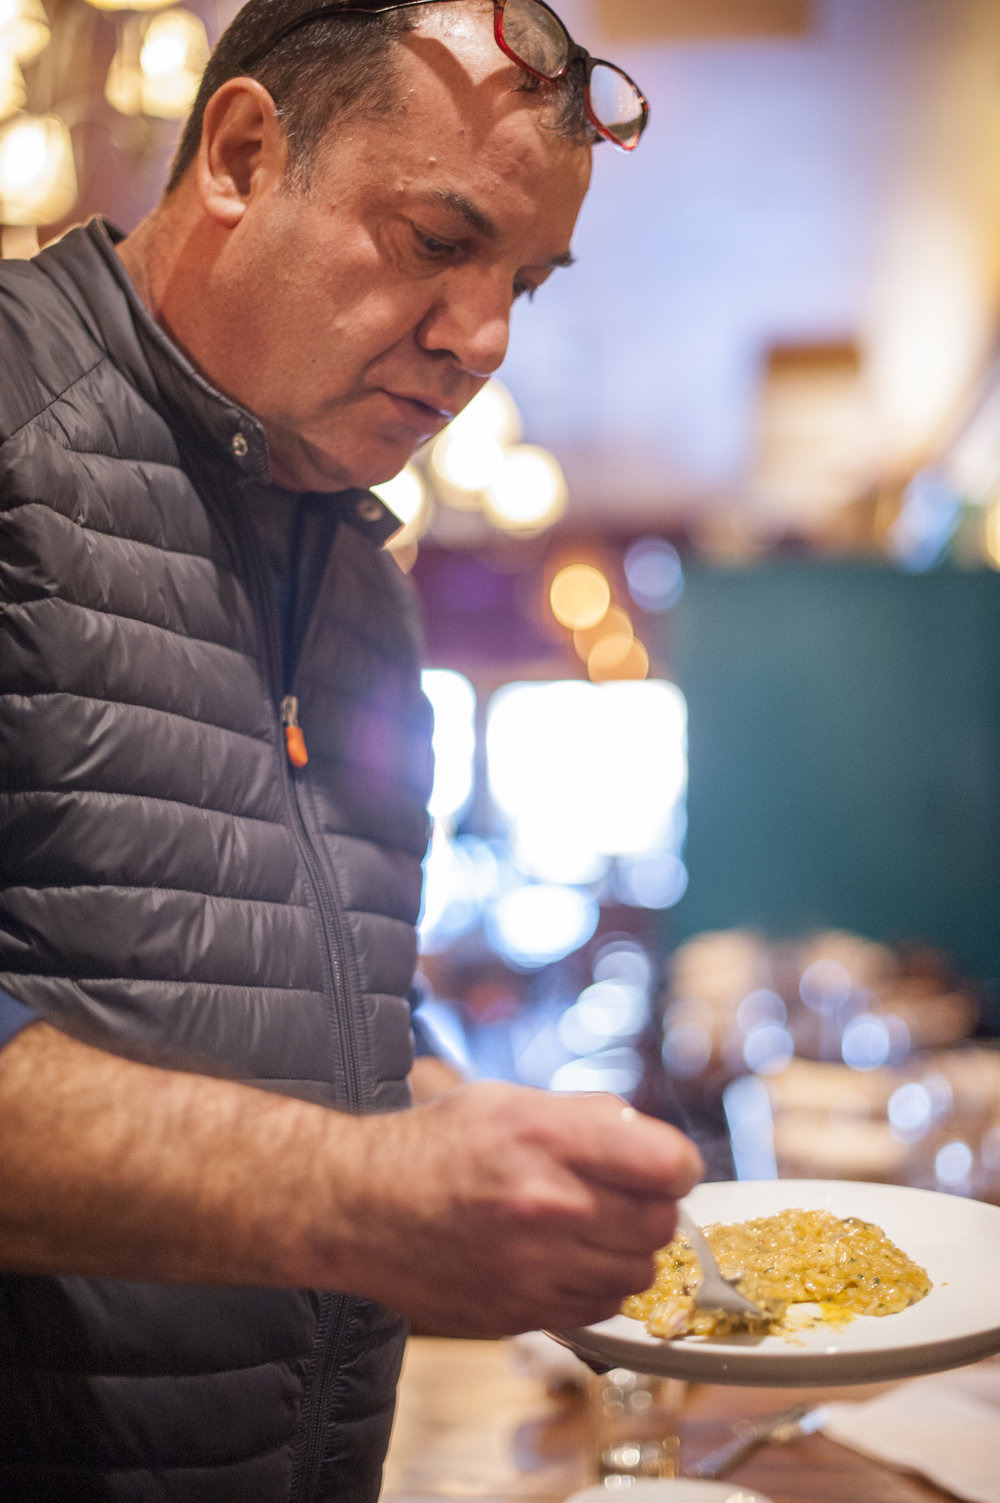 Nino Antuzzi, owner of Osteria Da Nino, samples a seafood risotto to ensure the finest quality in his cuisine.